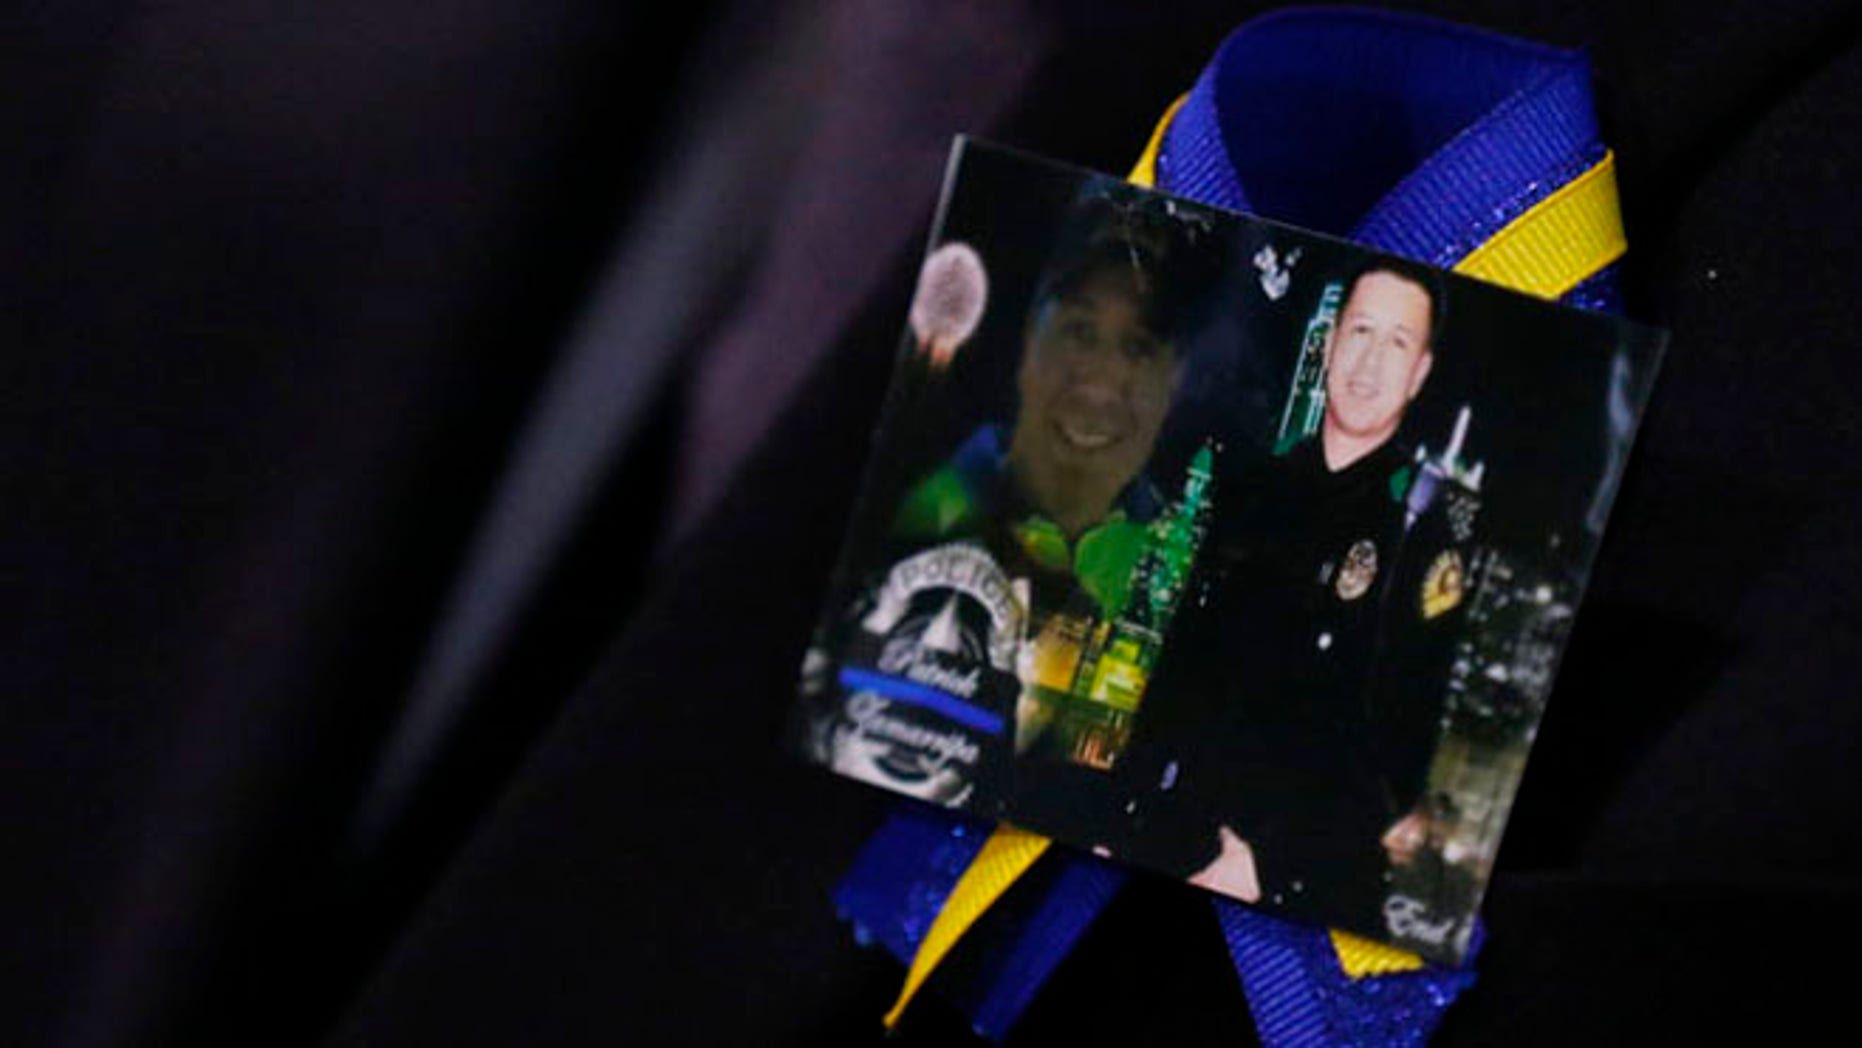 A family member wears a ribbon with photos of Patrick Zamarripa during a funeral service for Dallas police officer Patrick Zamarripa on Saturday, July 16, 2016 at Wilkerson-Greines Athletic Center in Fort Worth, Texas.  Zamarripa was one of the five officers killed July 7  by a lone gunman during a march to protest recent fatal shootings of black men in Minnesota and Louisiana by police. (Ashley Landis/The Dallas Morning News via AP, Pool)